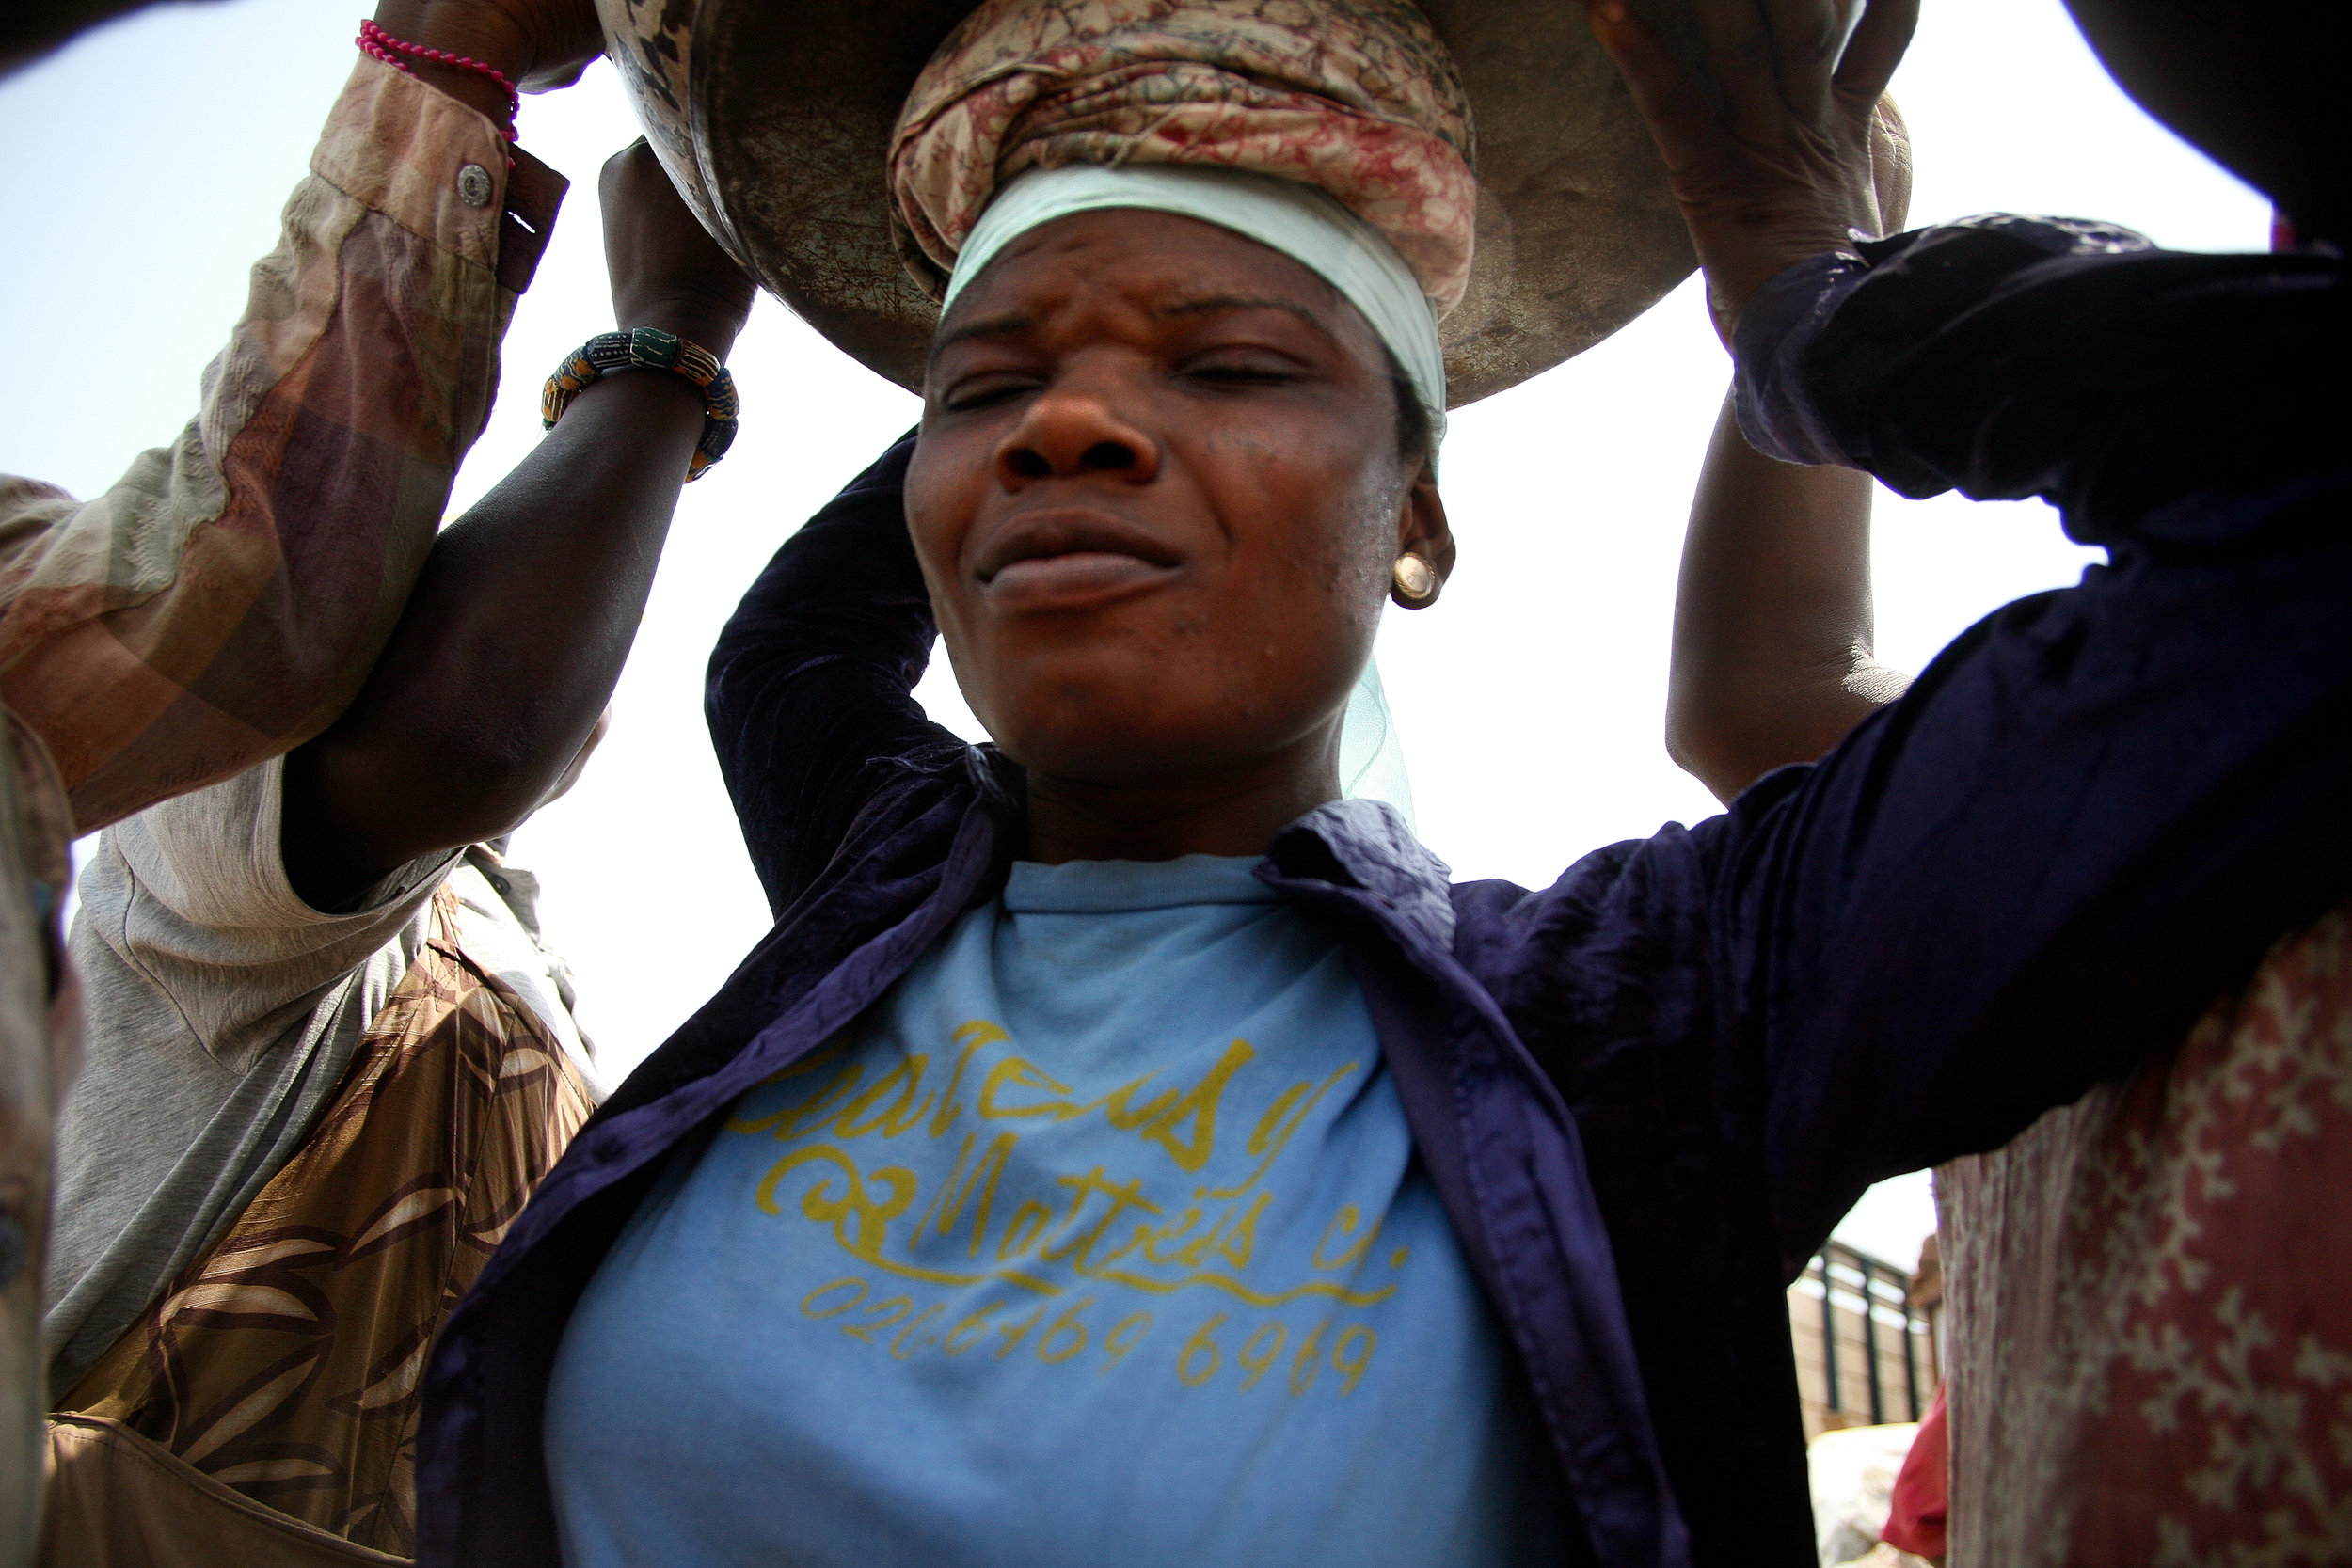 """Lamisi lifts a load of yams onto her head in Agbogblushie Market in Accra, Ghana on Feb, 13, 2009. """"At the end of the day, your whole body will be paining you,"""" she says of the work."""